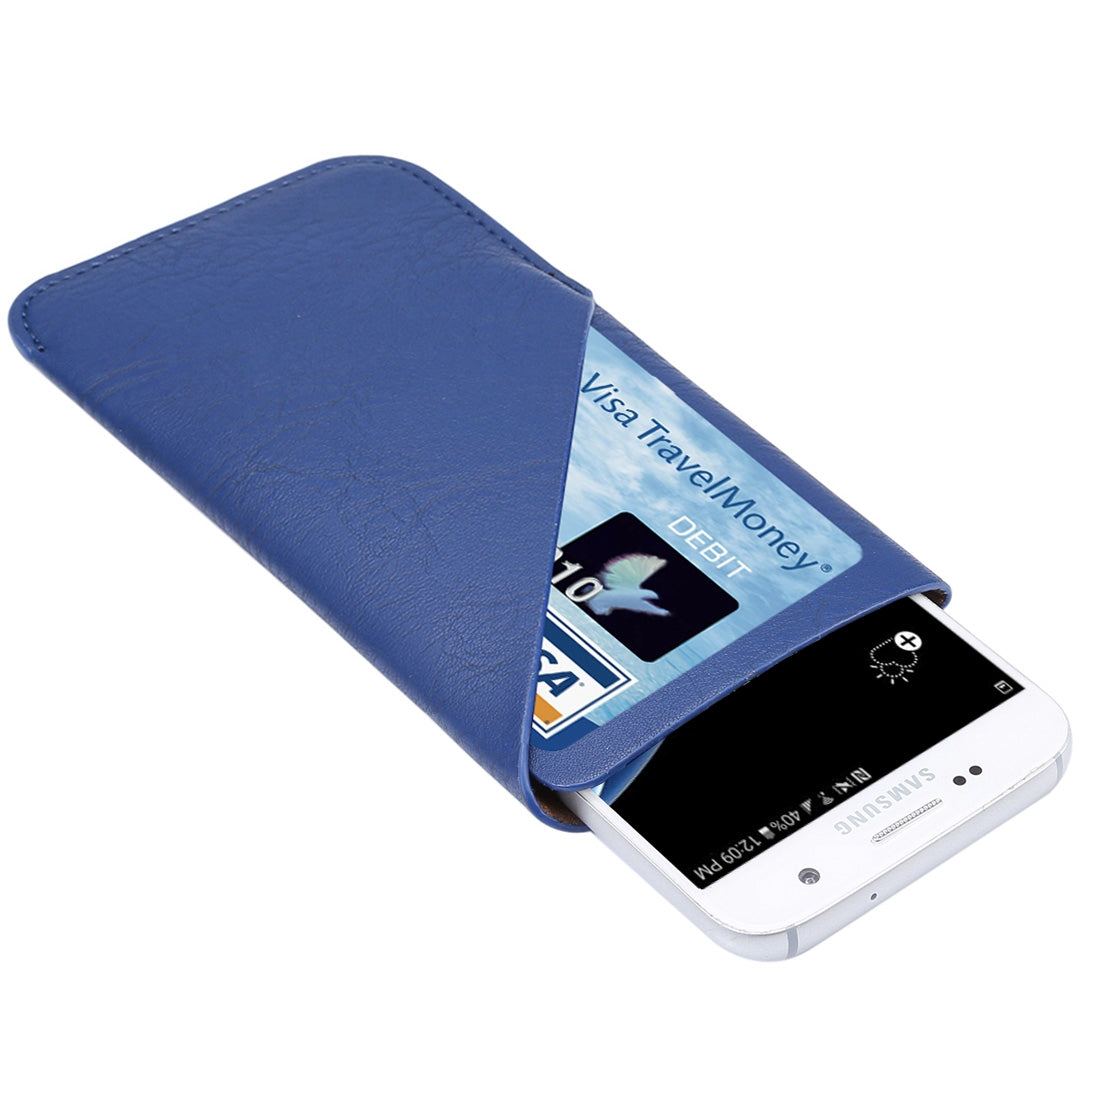 5.2 inch Universal Elephant Skin Texture Vertical Style Pouch Case Bag with Card Slot, For iPhone X , Galaxy S7 / S6, Huawei P9, etc.(Blue)